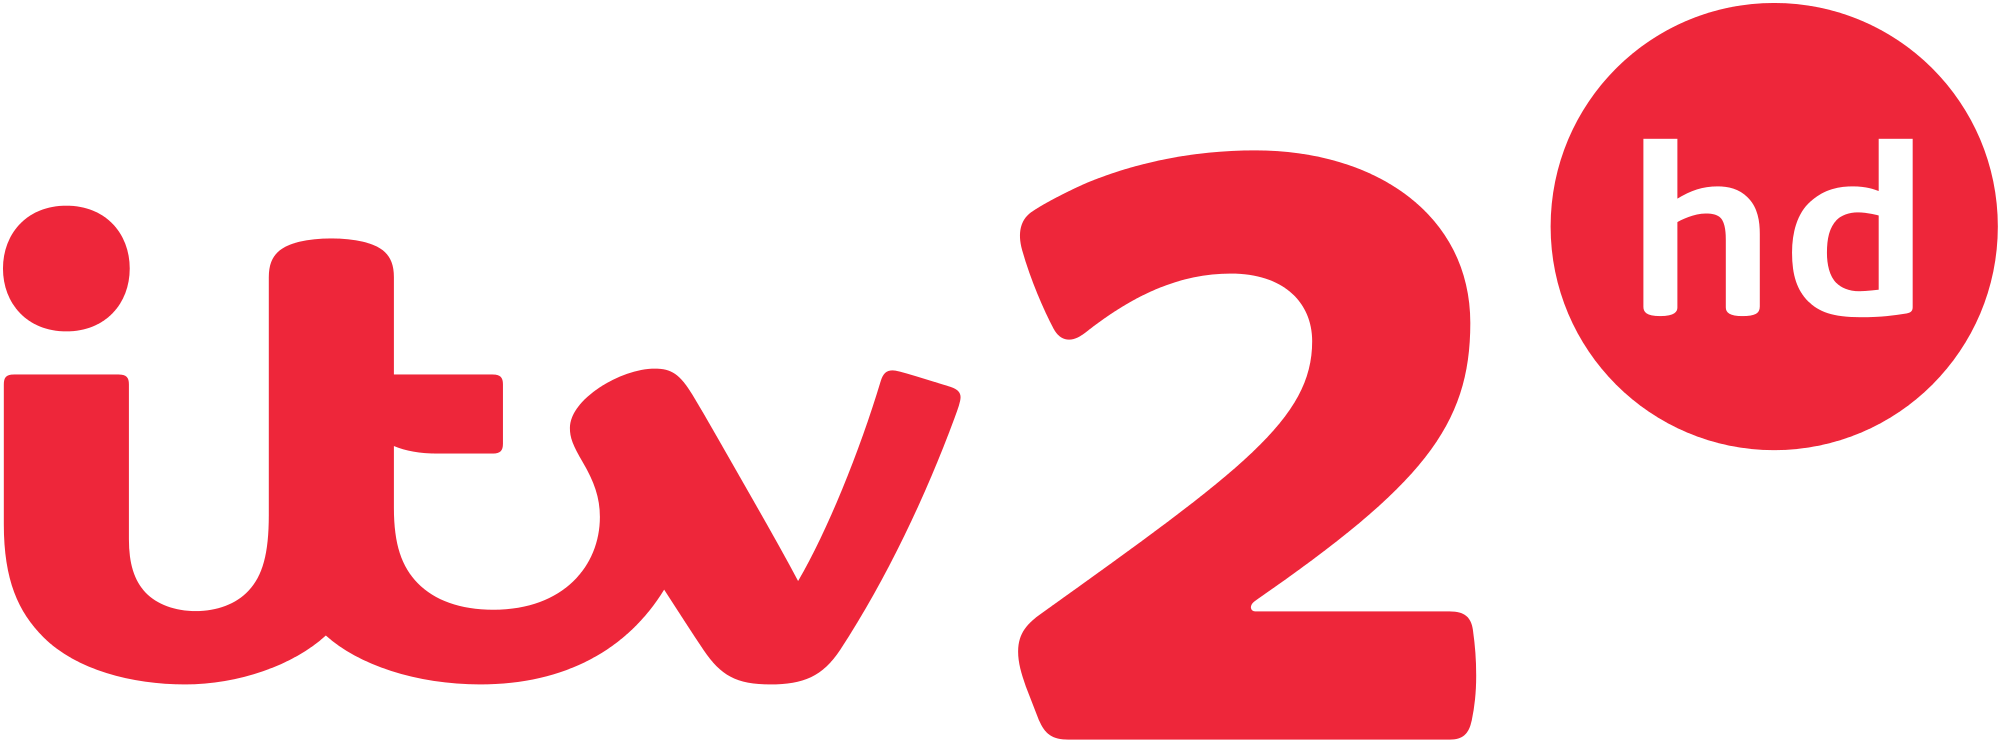 ITV2 HD logo 2013 svg.png - Itv2 Hd PNG - Itv2 Hd Vector PNG